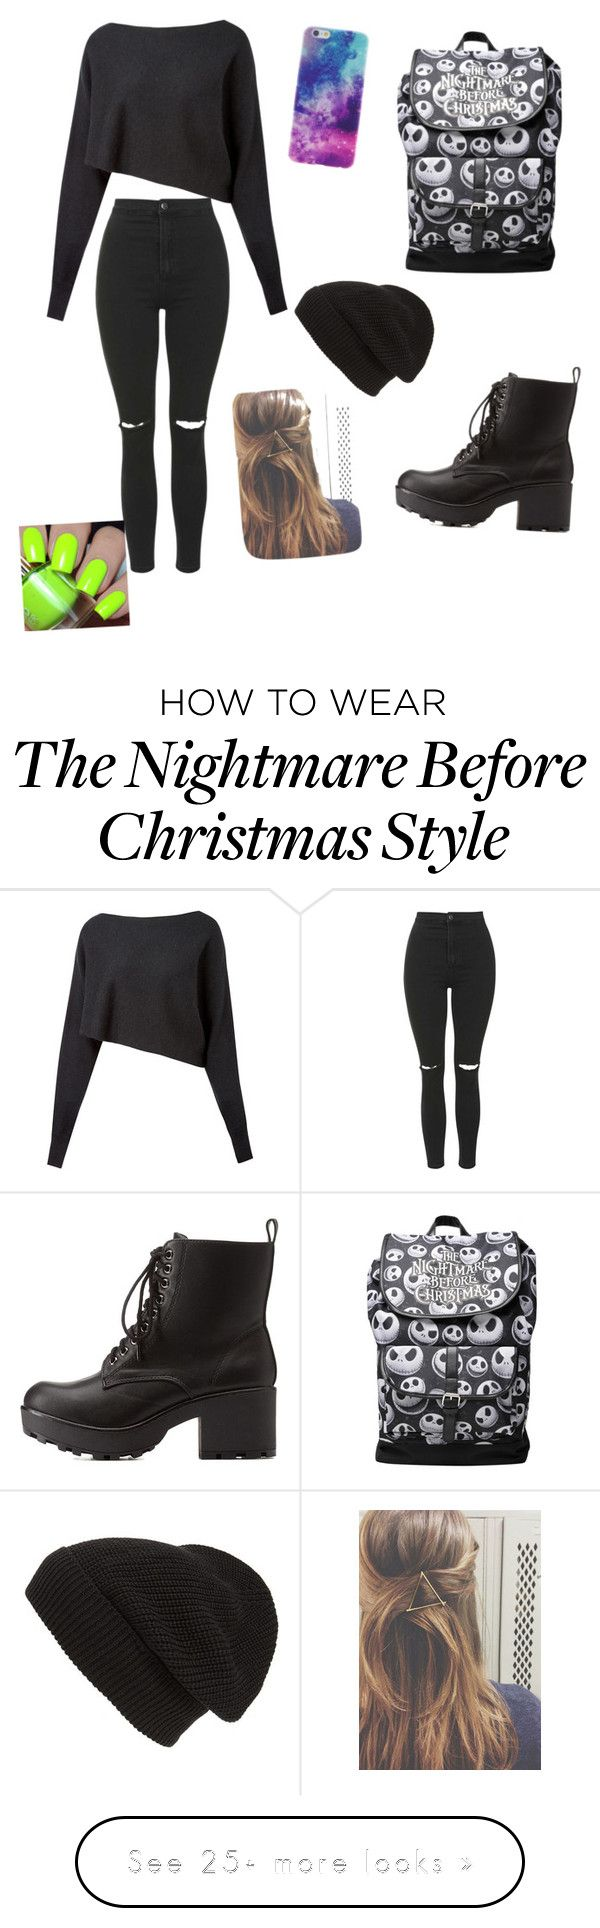 """""""bad girl """" by lilocean on Polyvore featuring Crea Concept, Topshop, Charlotte Russe and Phase 3"""